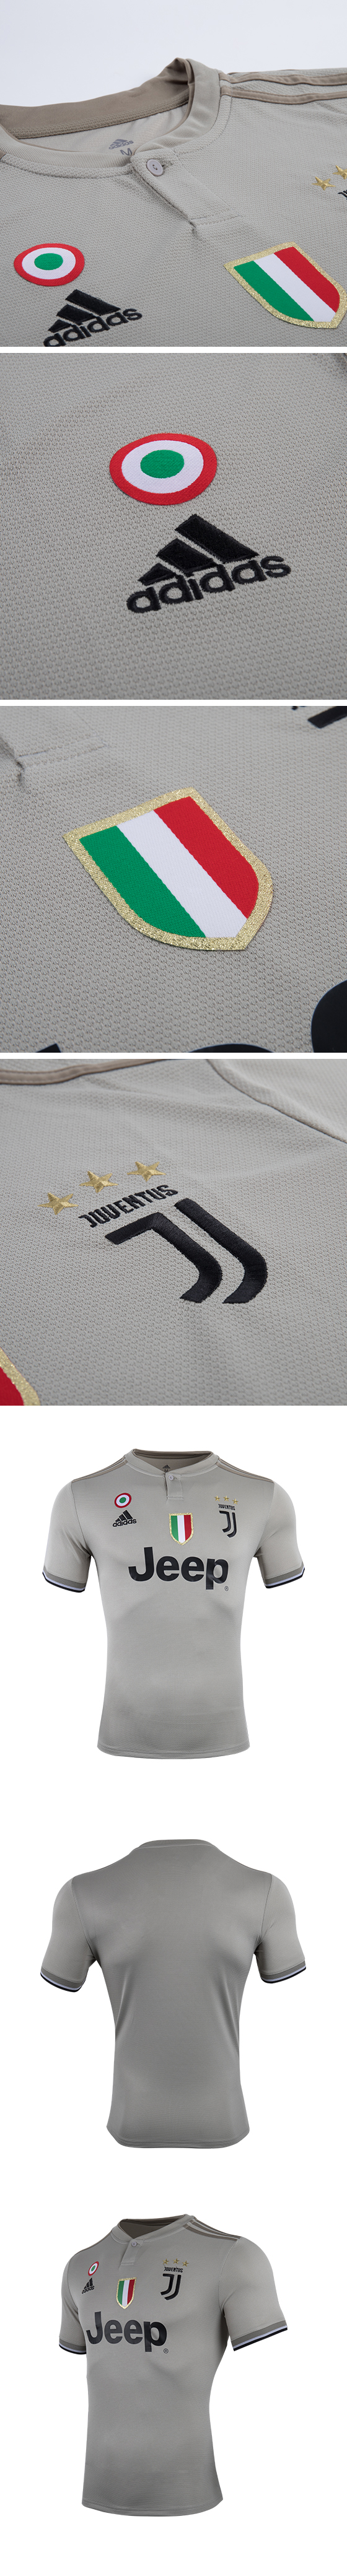 f6c085a82 After last season s Juventus away jersey introduced a classy design in  yellow and blue